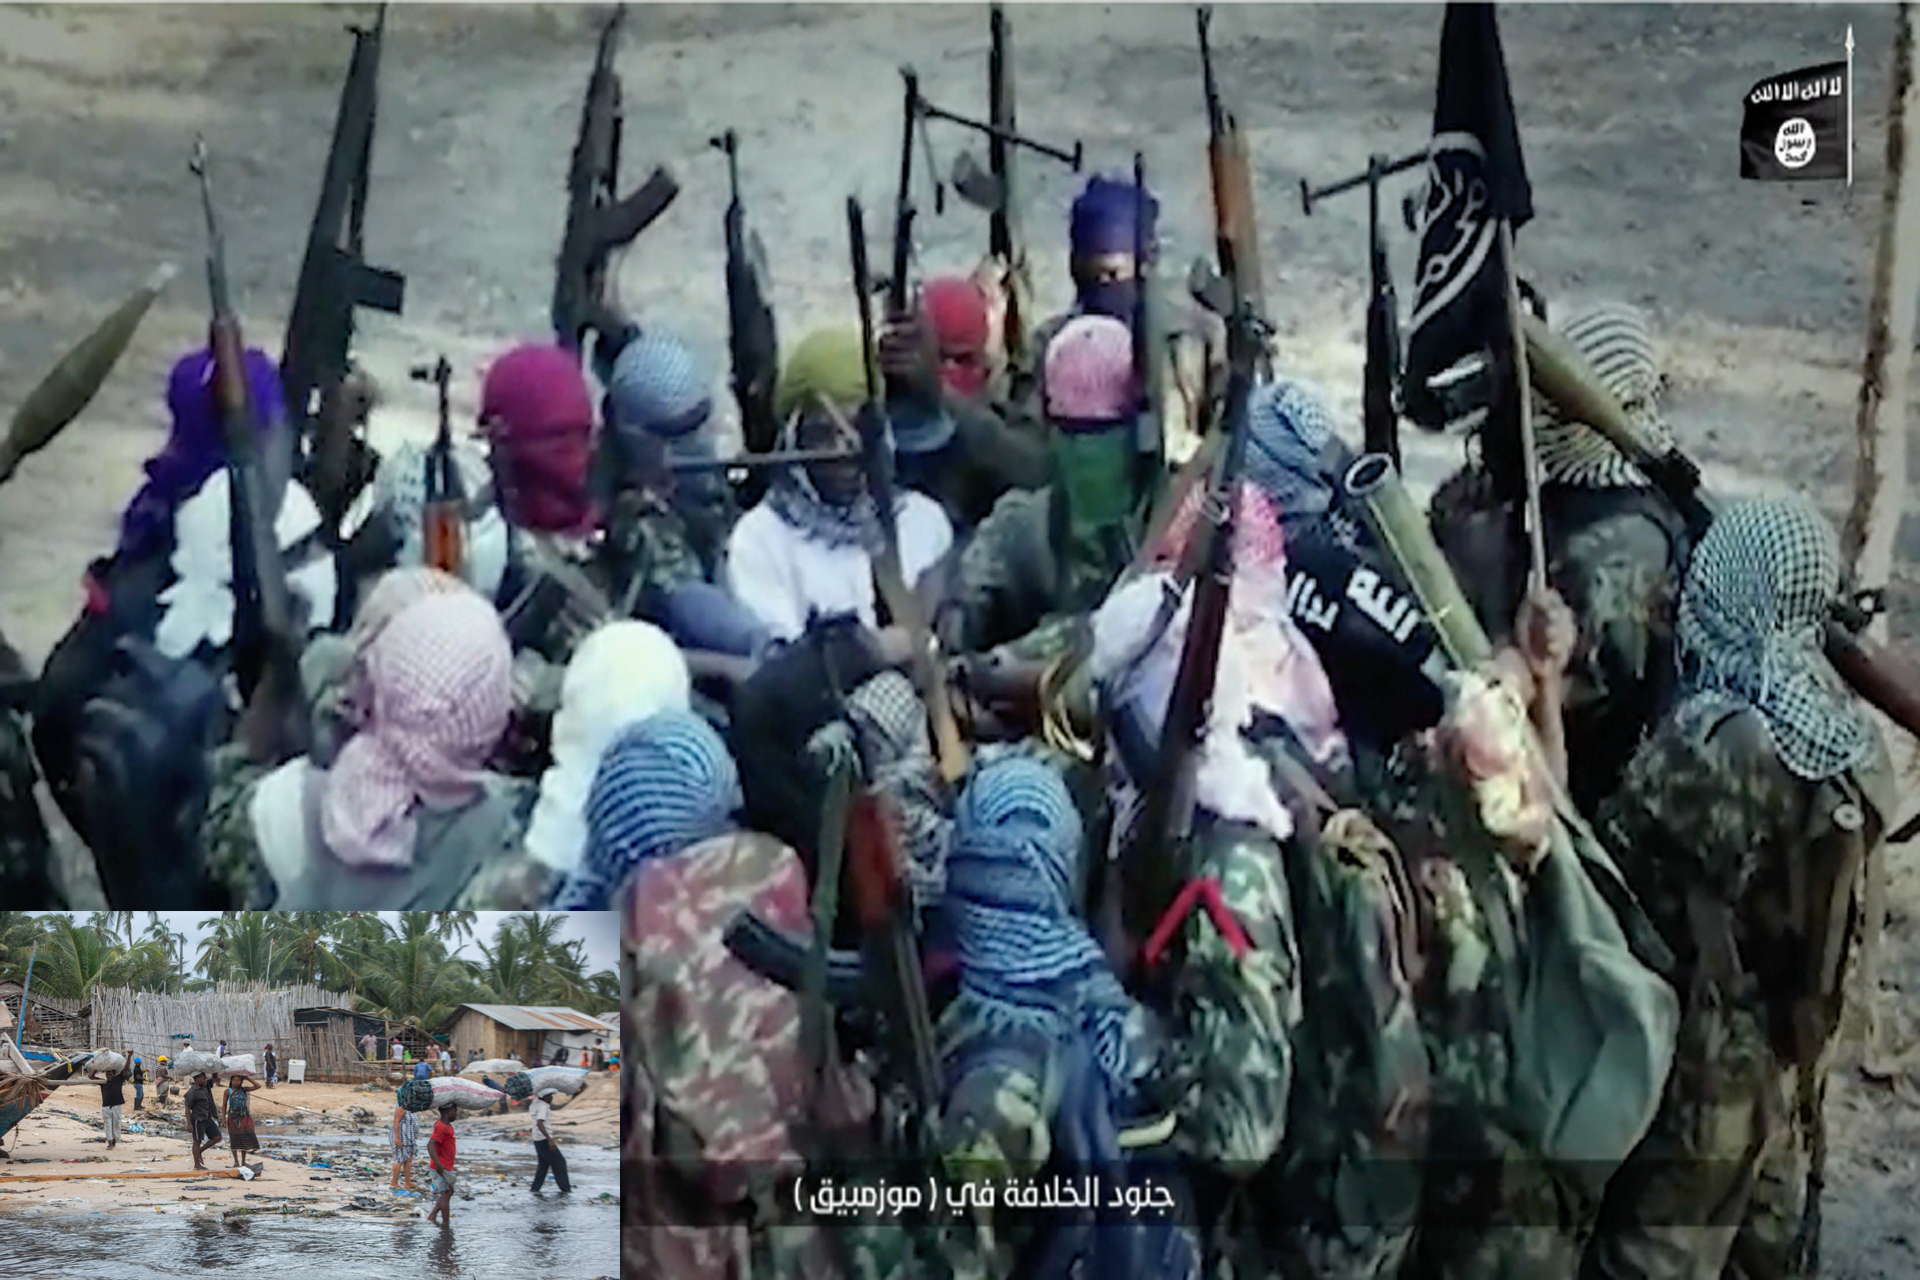 Mozambique is in crisis as ISIS terrorists brutally killed, raped, maimed, and abducted civilians